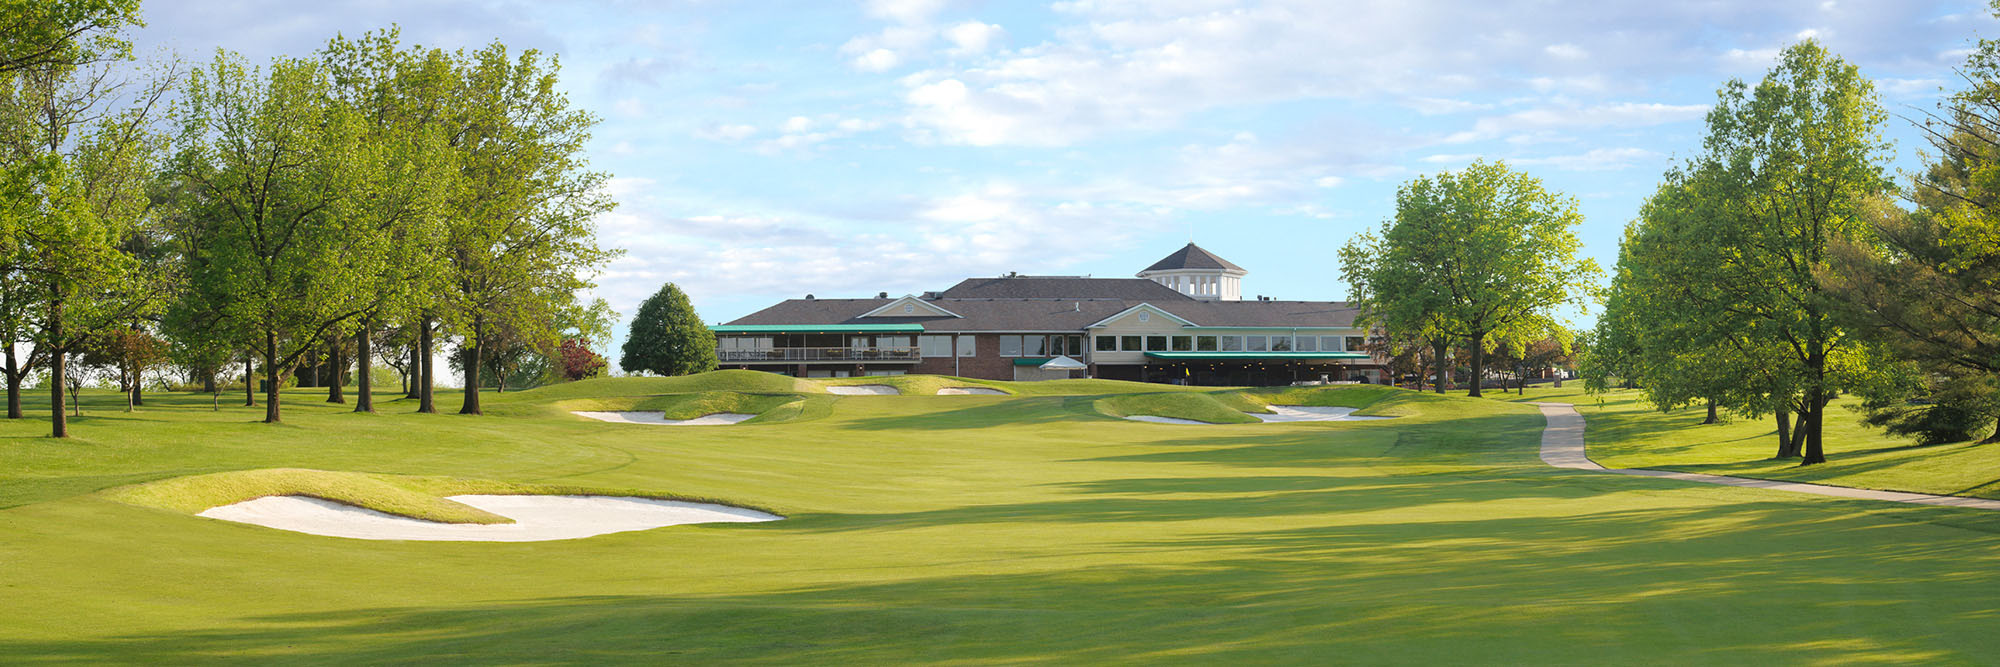 Golf Course Image - Forest Hills Country Club No. 9